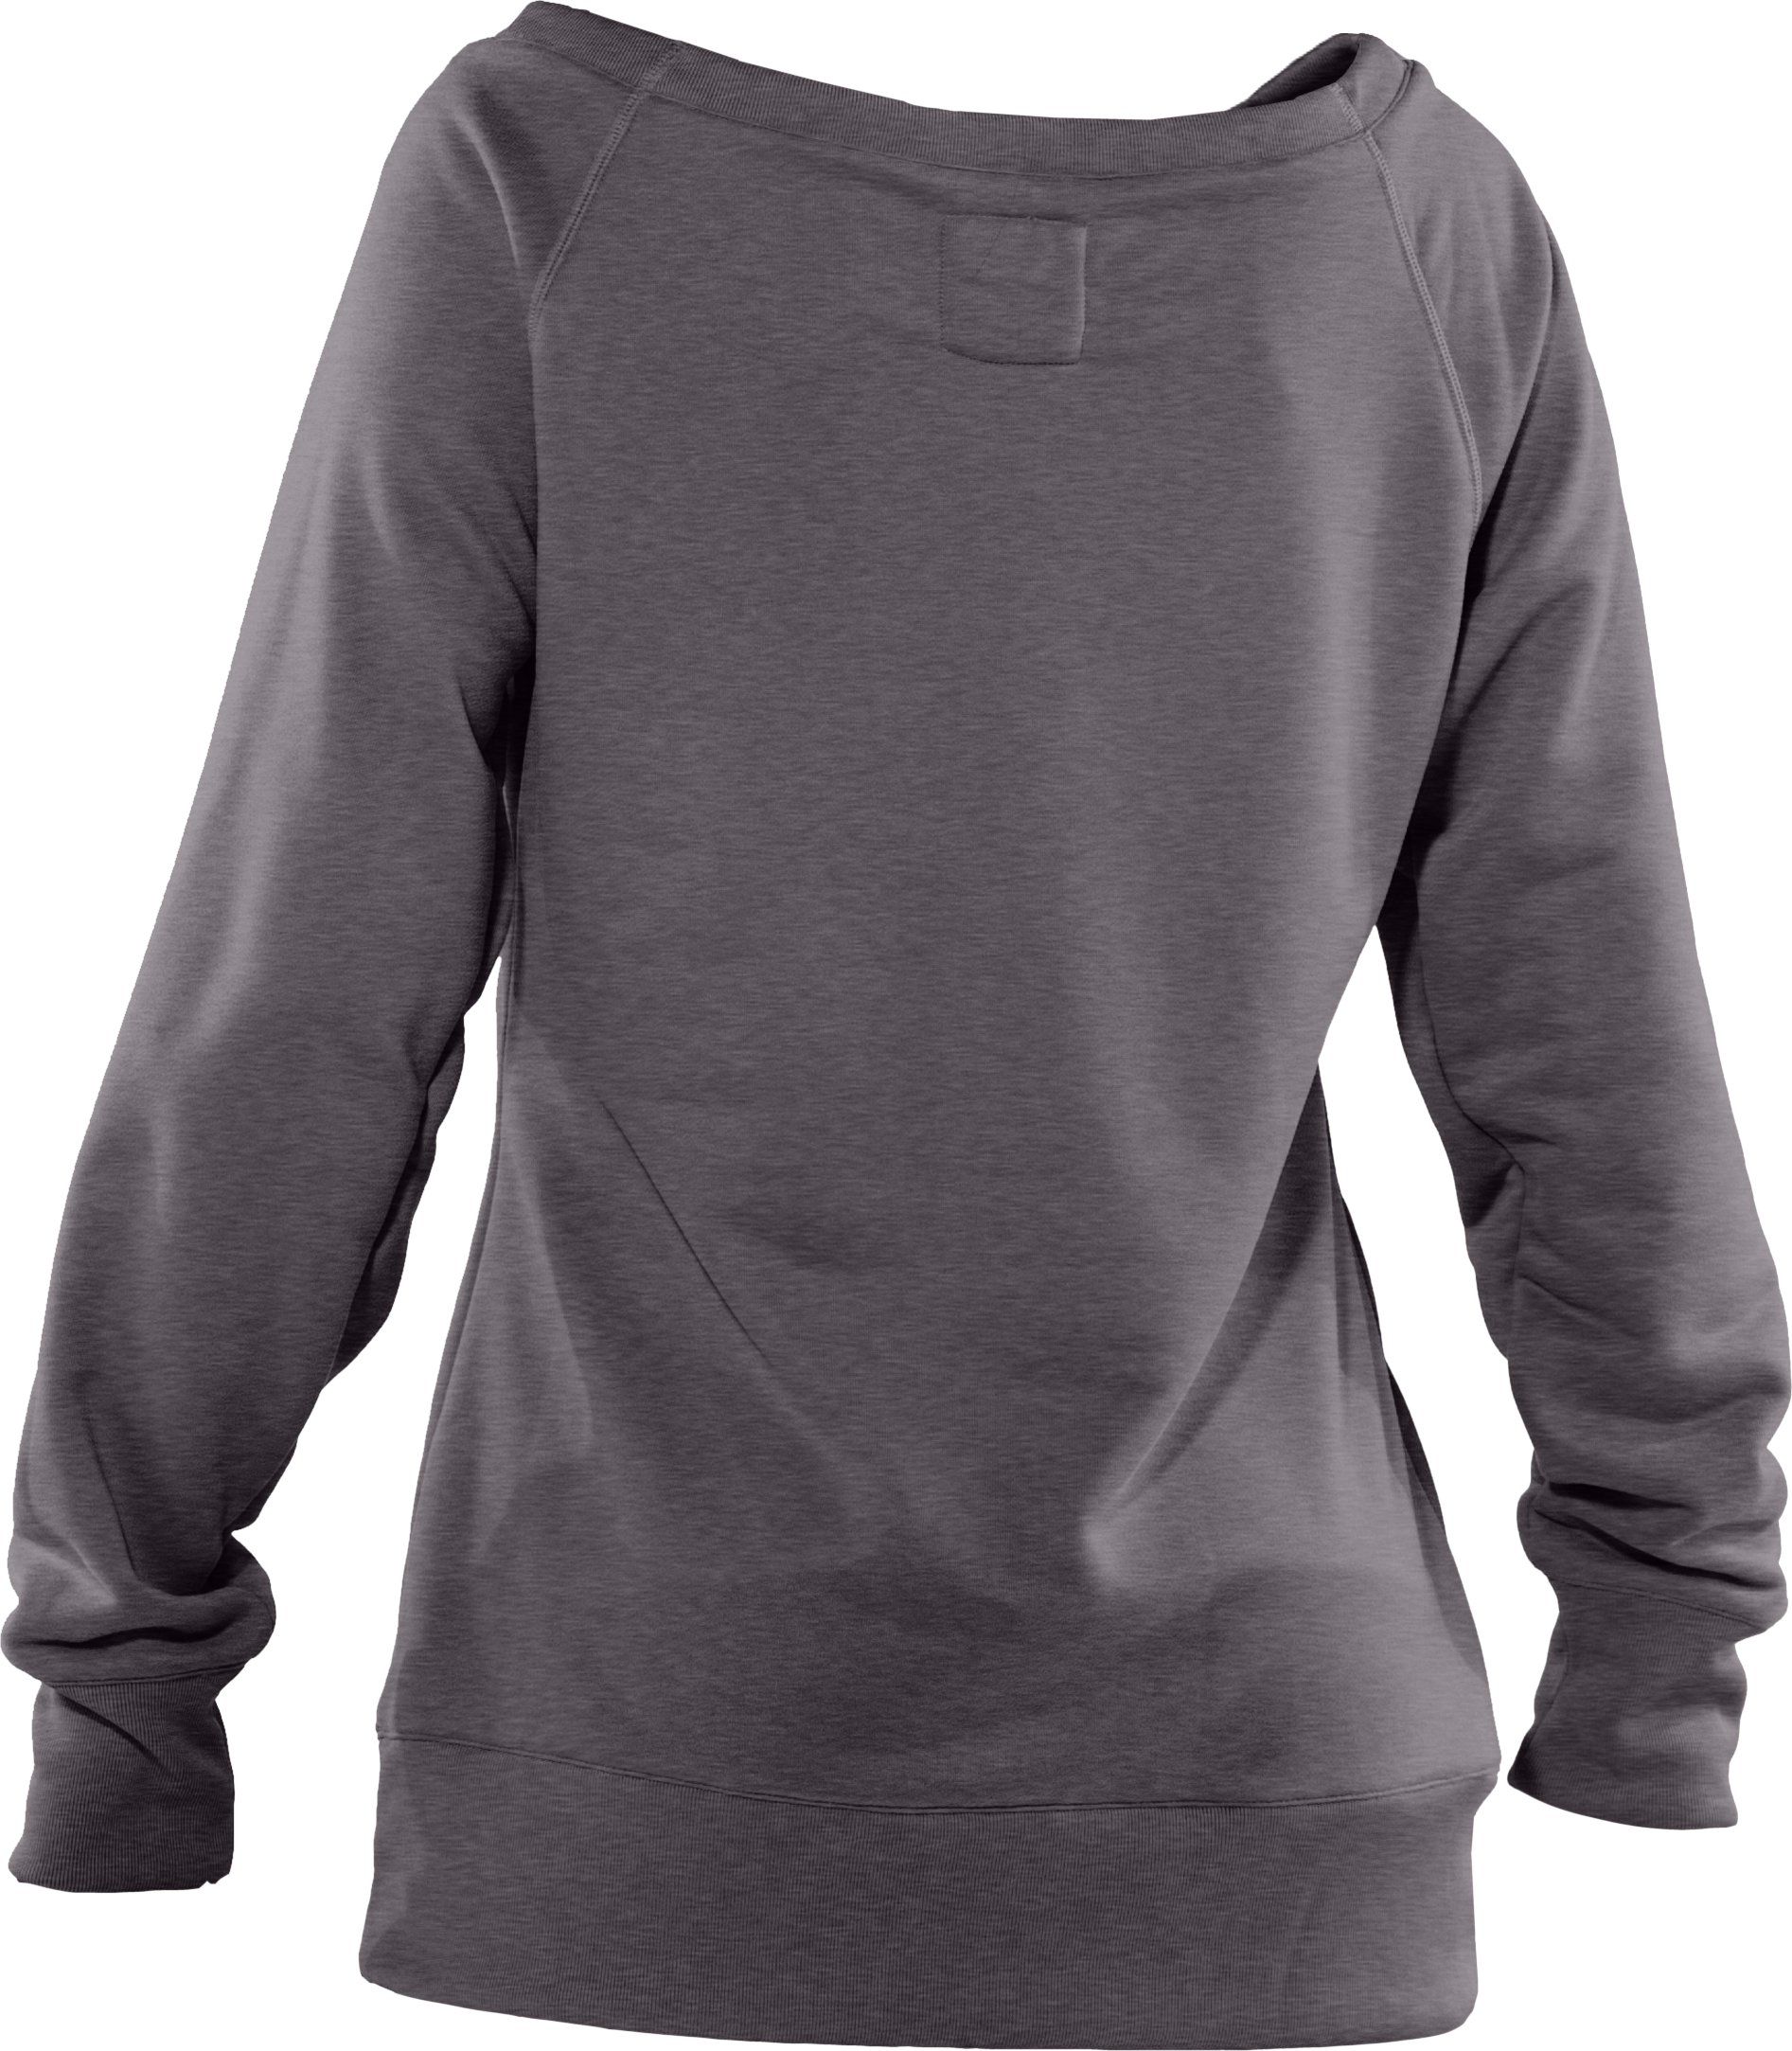 Women's Varsity Sweatshirt, Carbon Heather